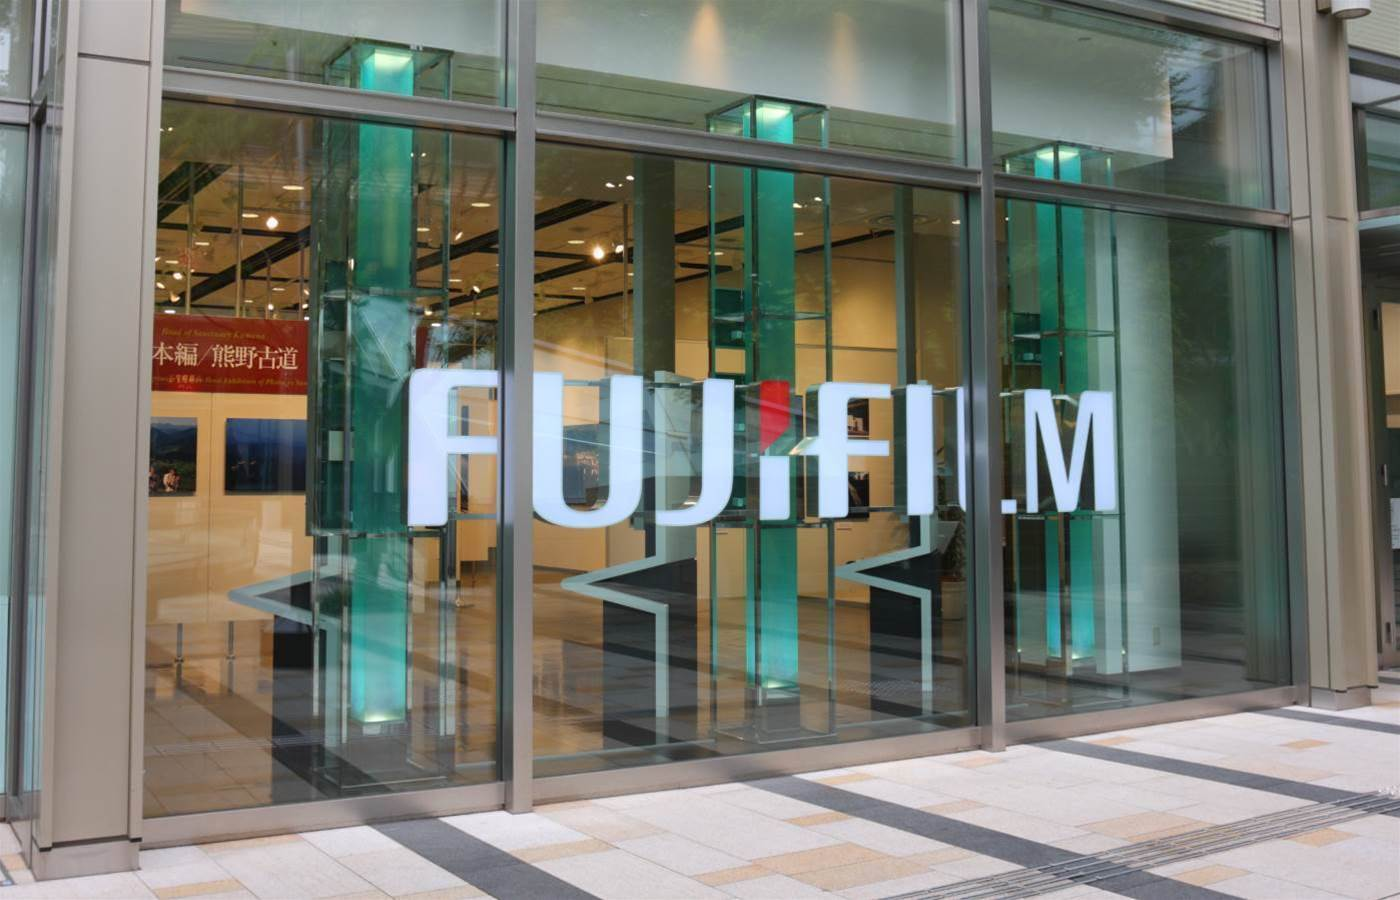 Fujifilm to take Xerox to court, claims merger is 'valid': report